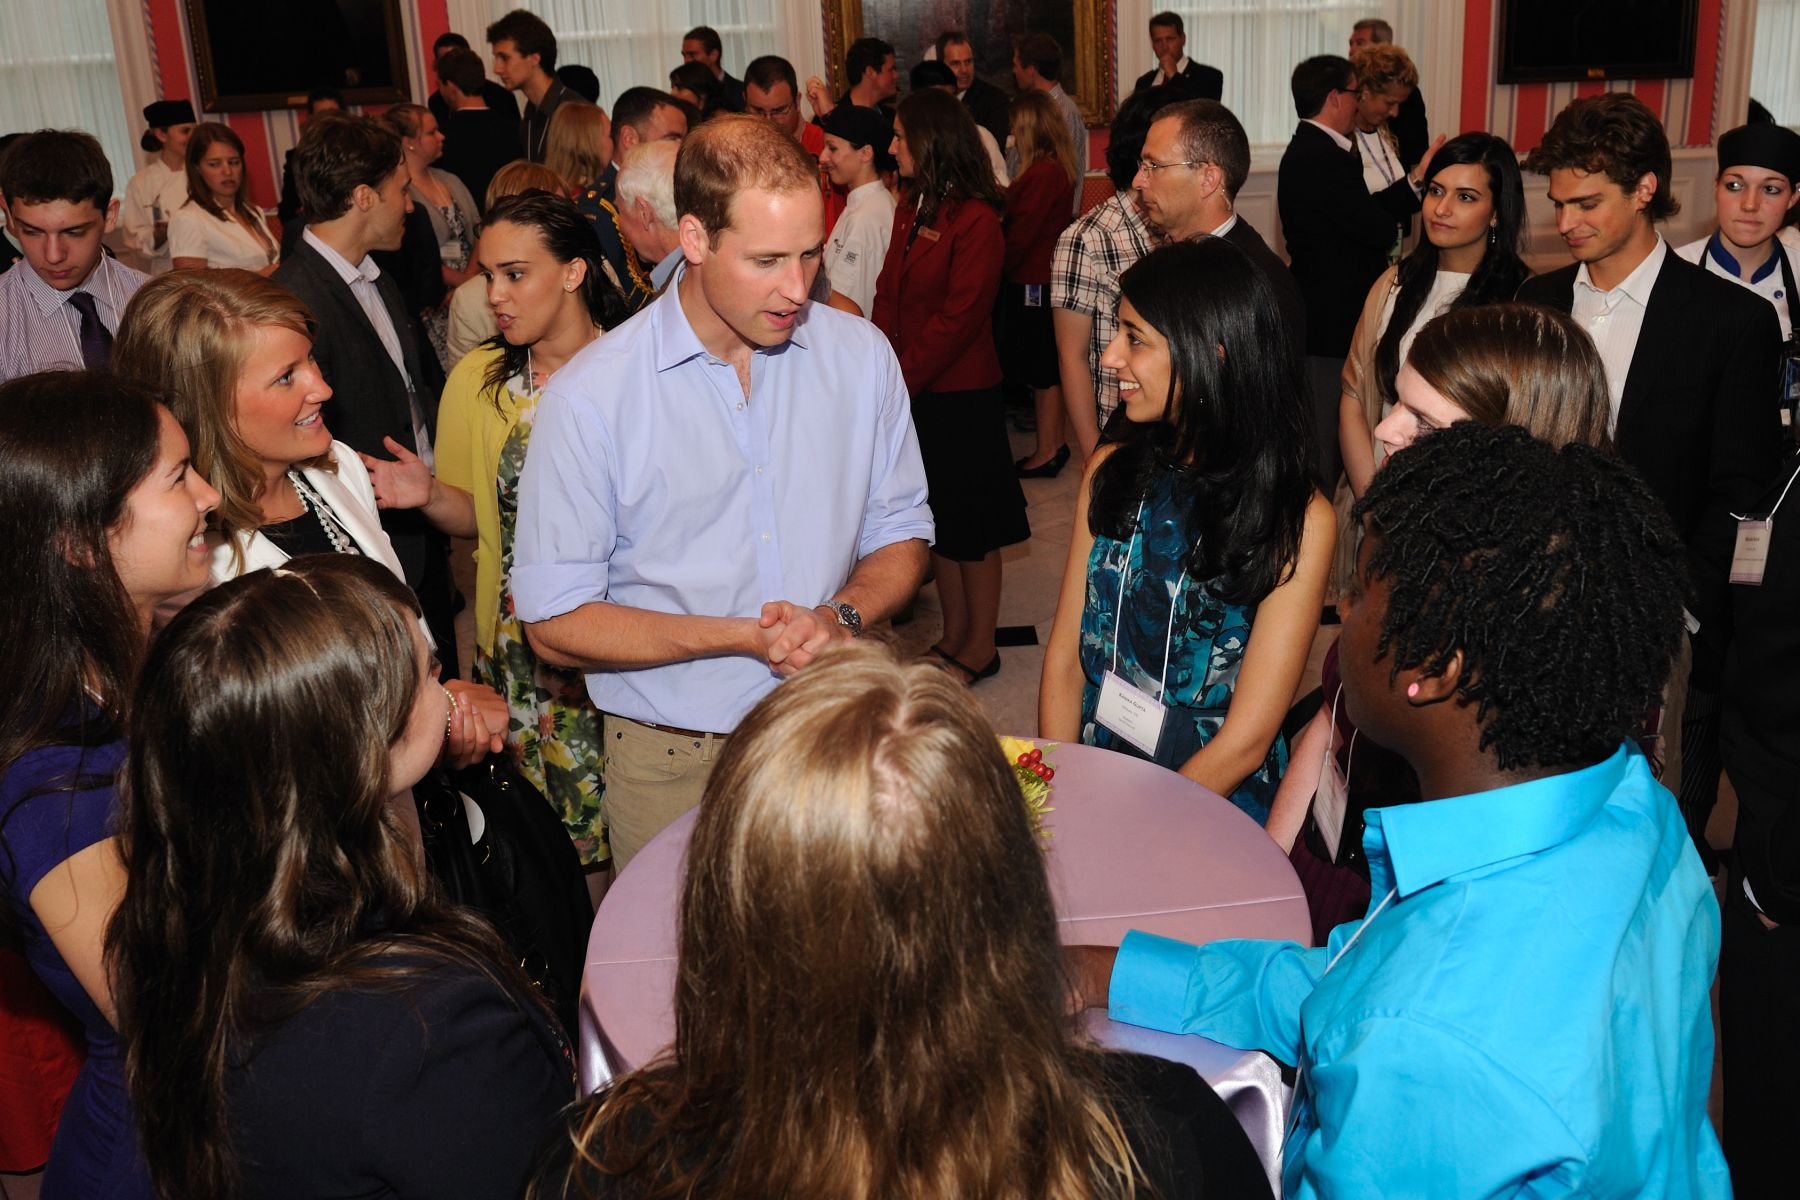 "This event also allowed these young Canadians to meet a member of the Royal family who has already identified ""service to others"" as a pivotal focus."